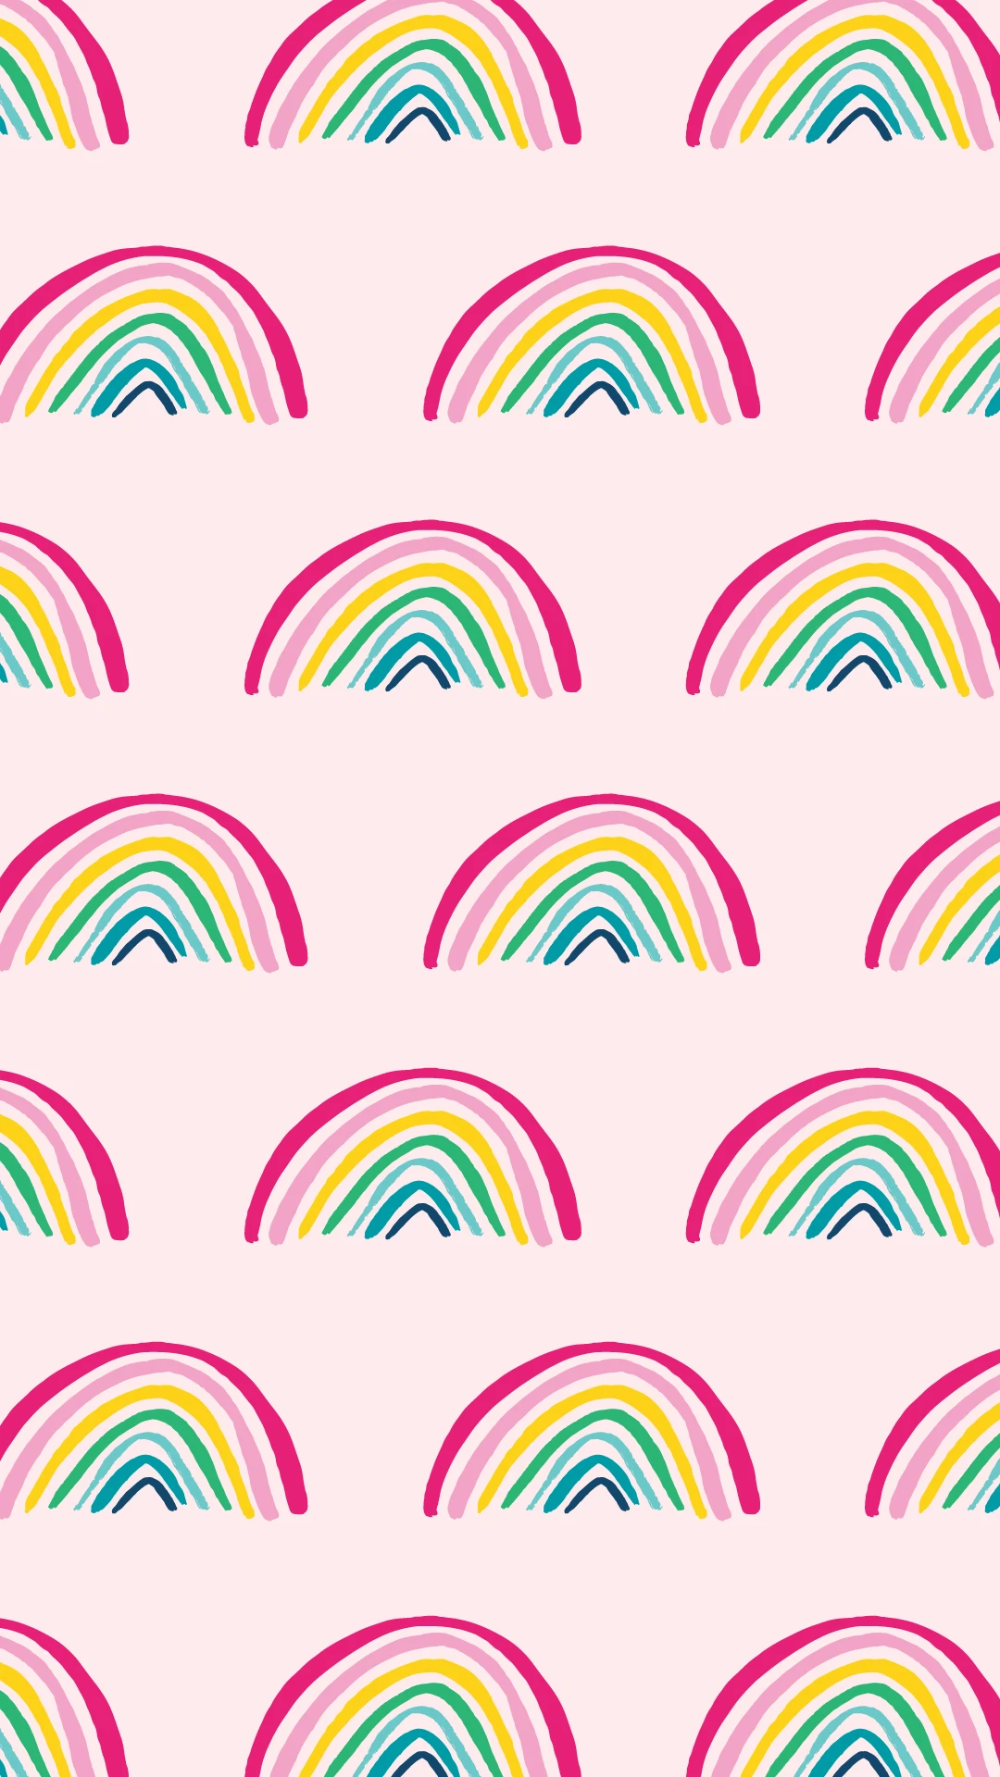 Free Phone Backgrounds